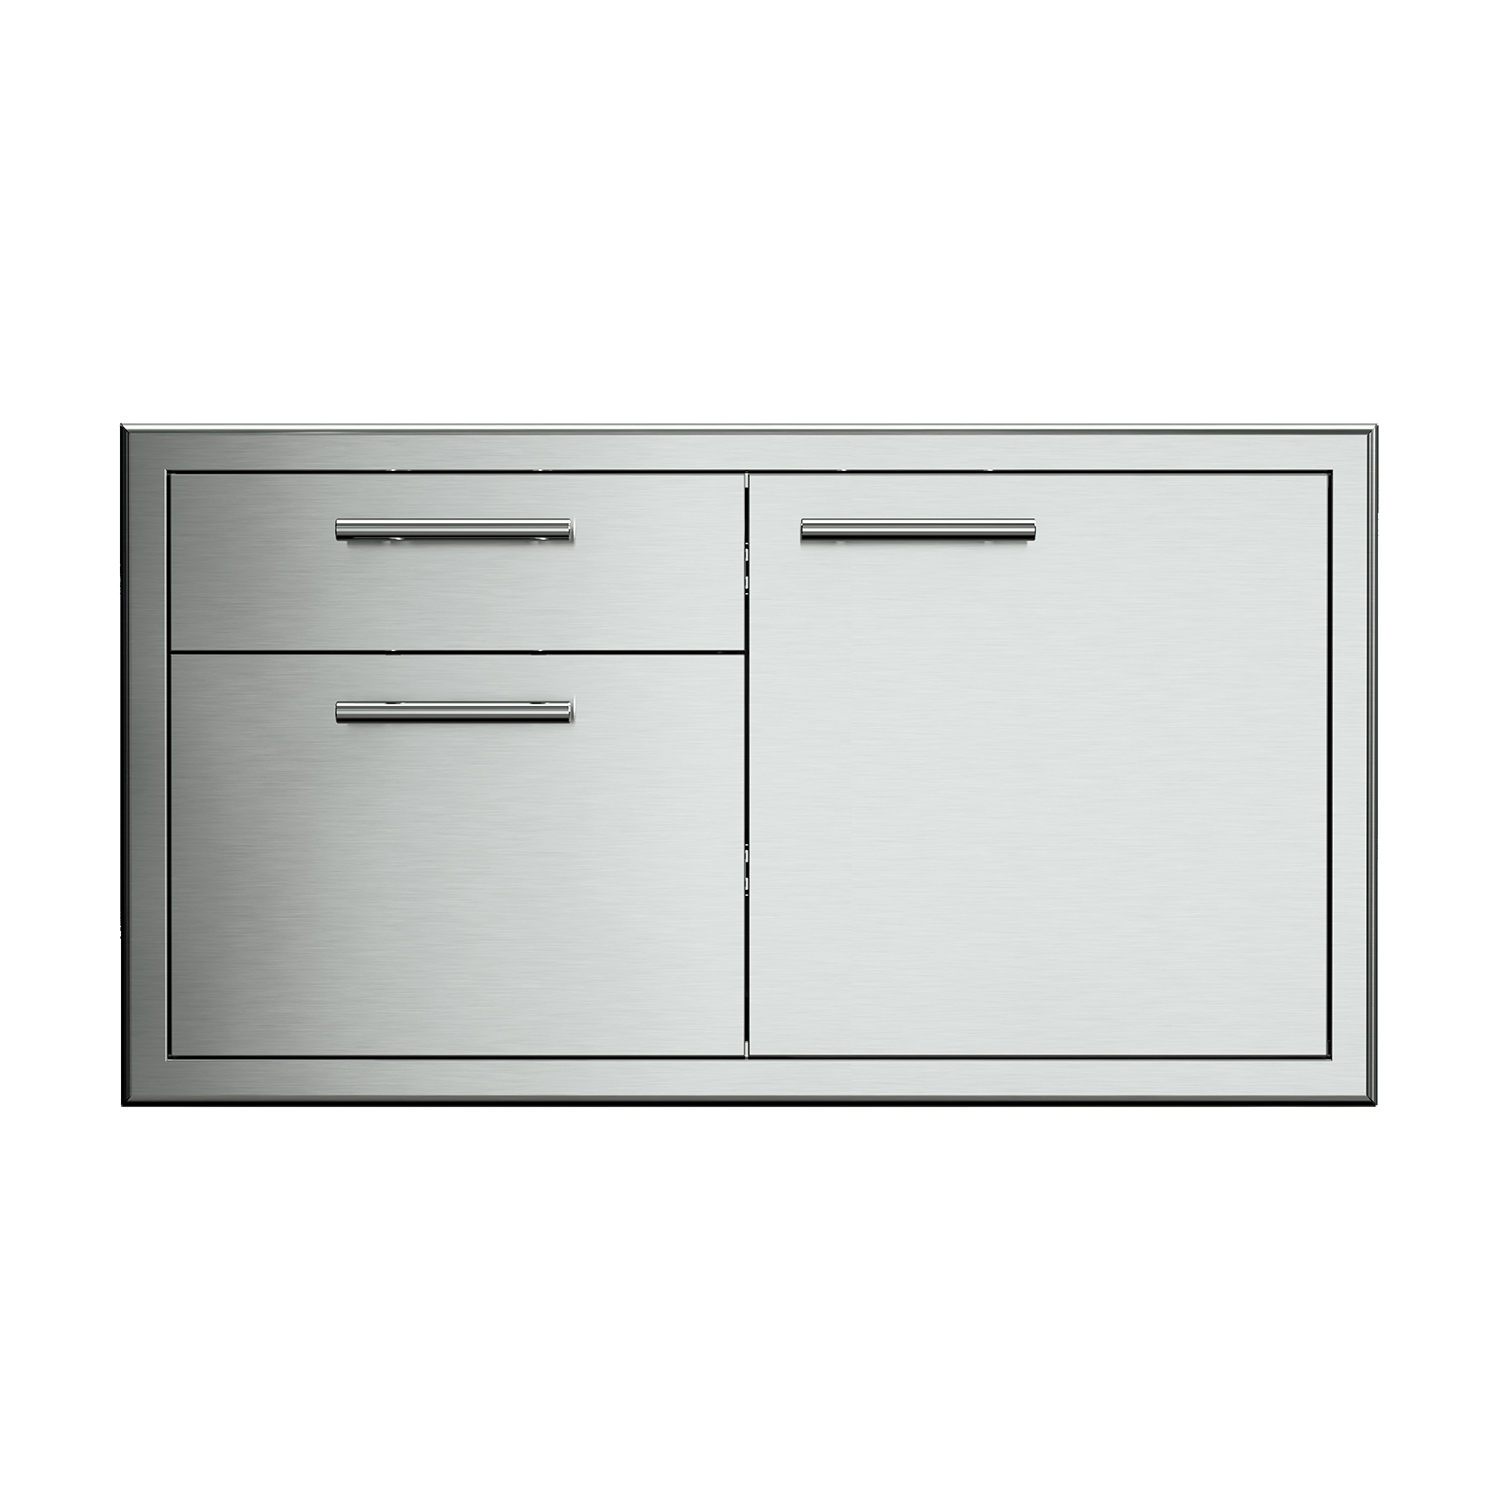 XO Ventilation 42 in Single Roll Out Door and Drawer Cabinet